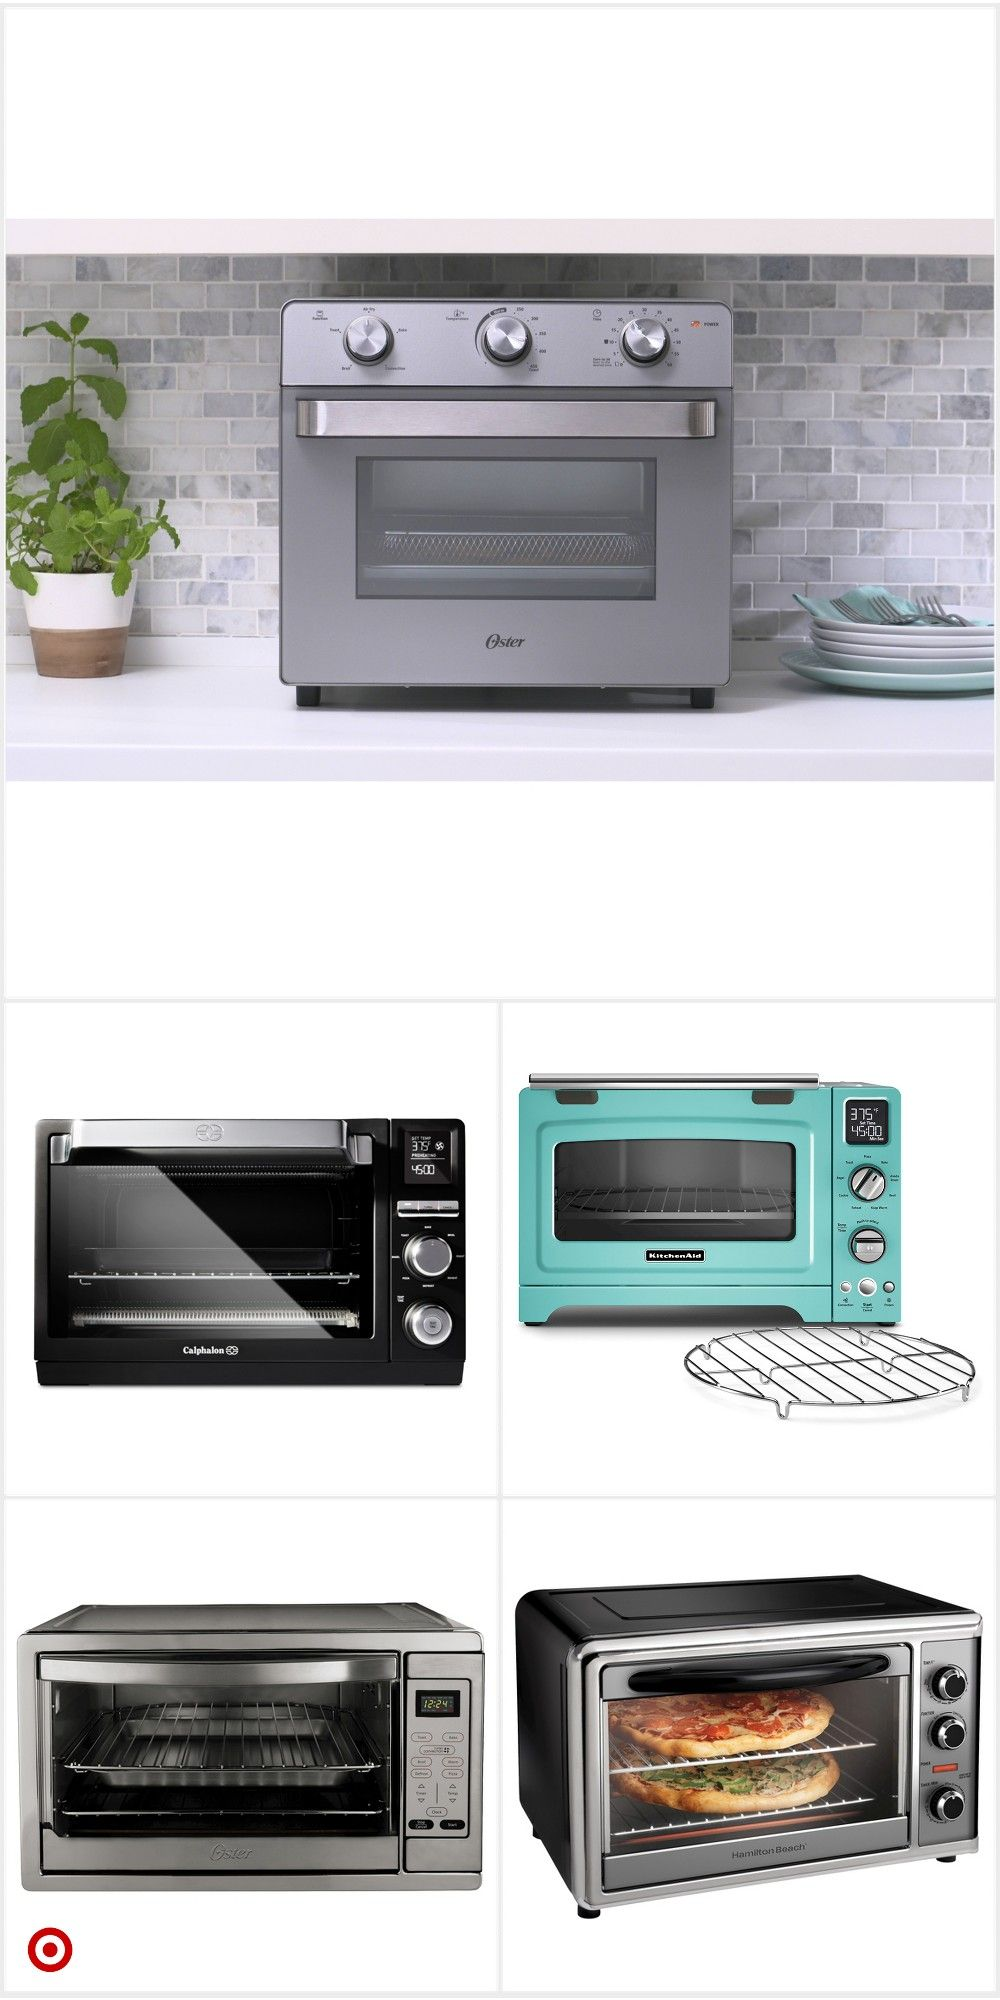 Shop Target For Countertop Ovens You Will Love At Great Low Prices Free Shipping On Orders Of 35 Or Fr In 2020 Countertop Oven Kitchen Armoire Countertops